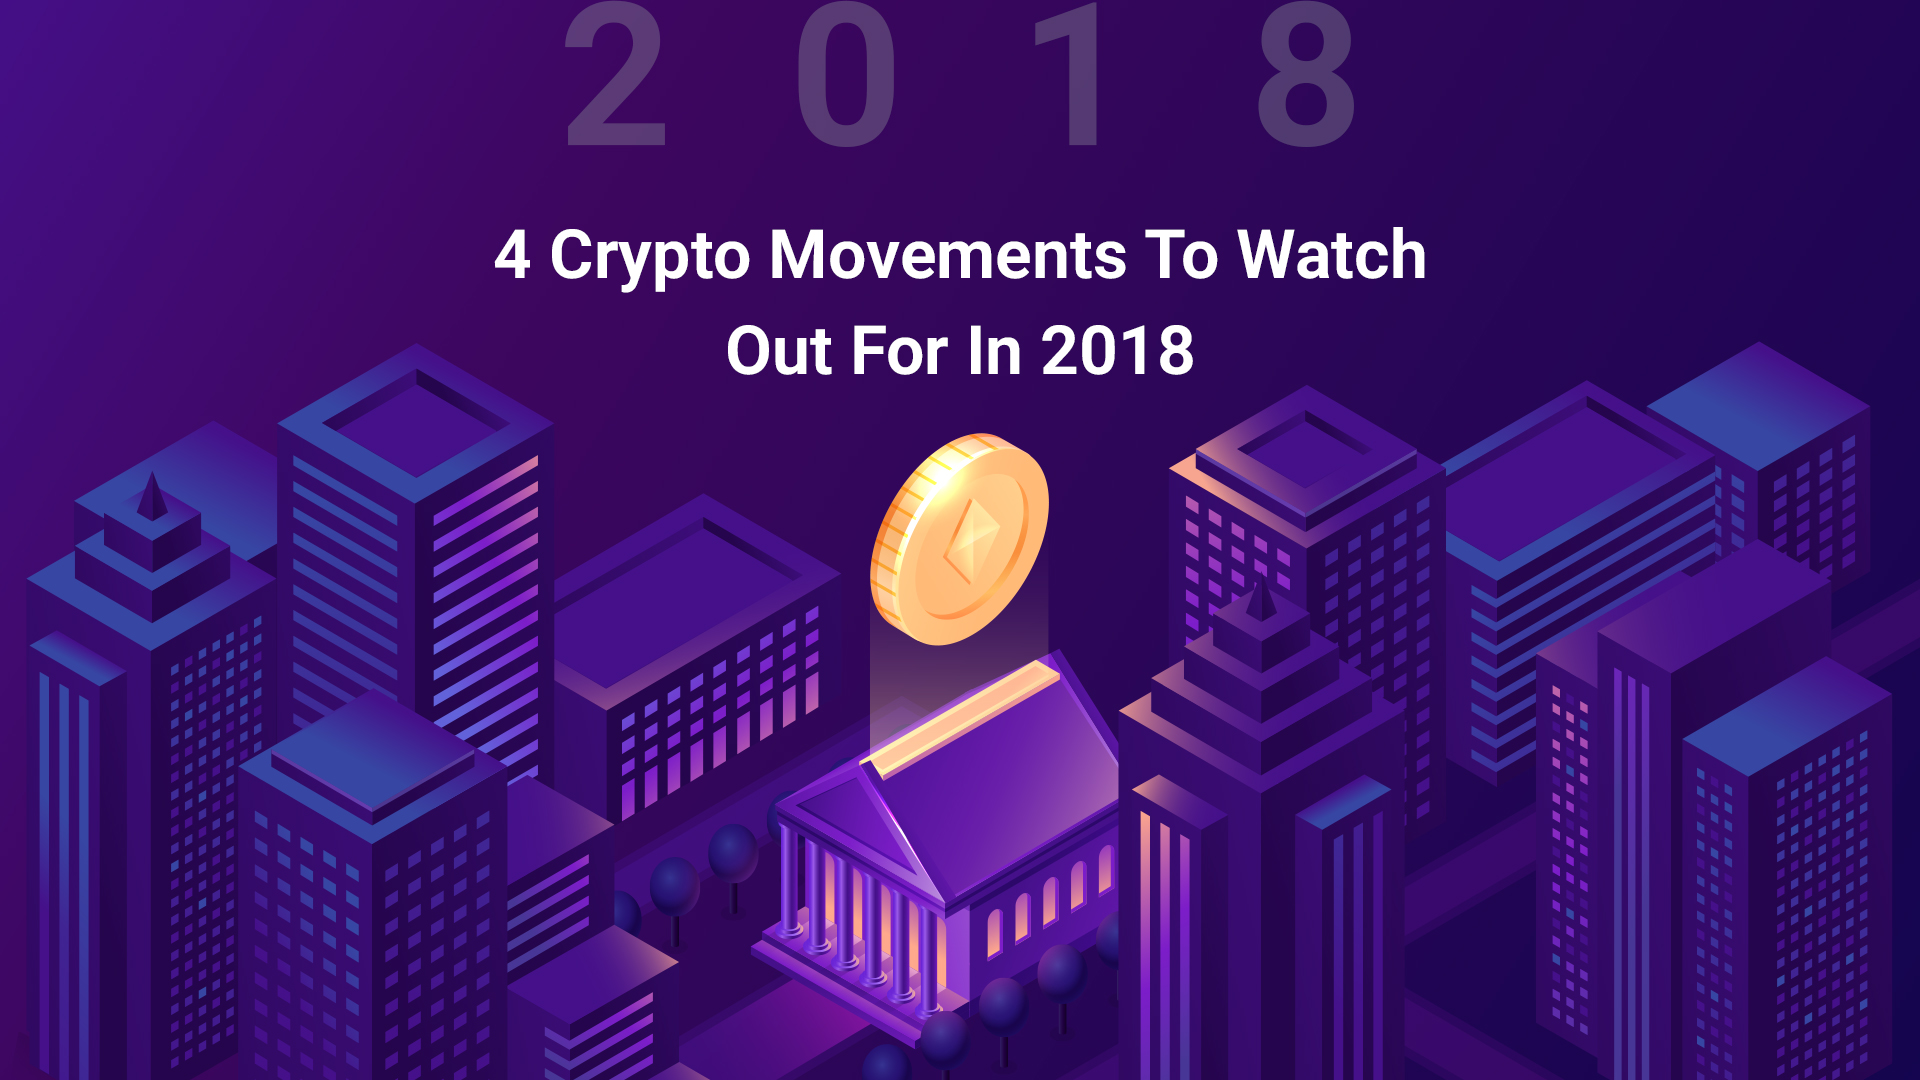 4 Crypto Movements to Watch Out For in 2018